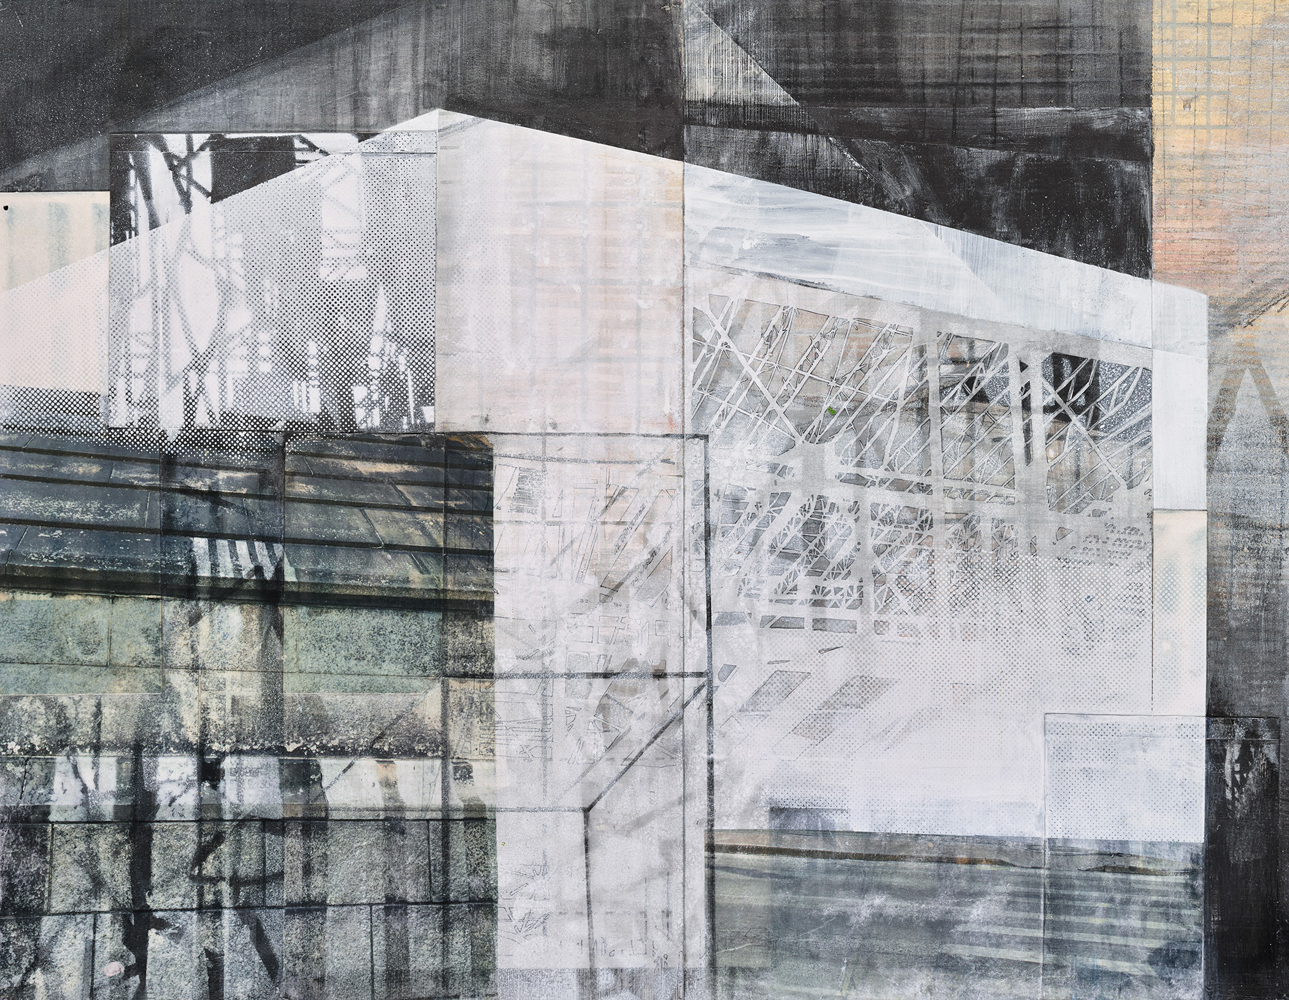 Amanda Knowles, Partial Facade, 2020, screen print, graphite, acrylic on paper, 21.25 x 27.5 inches, $2200.